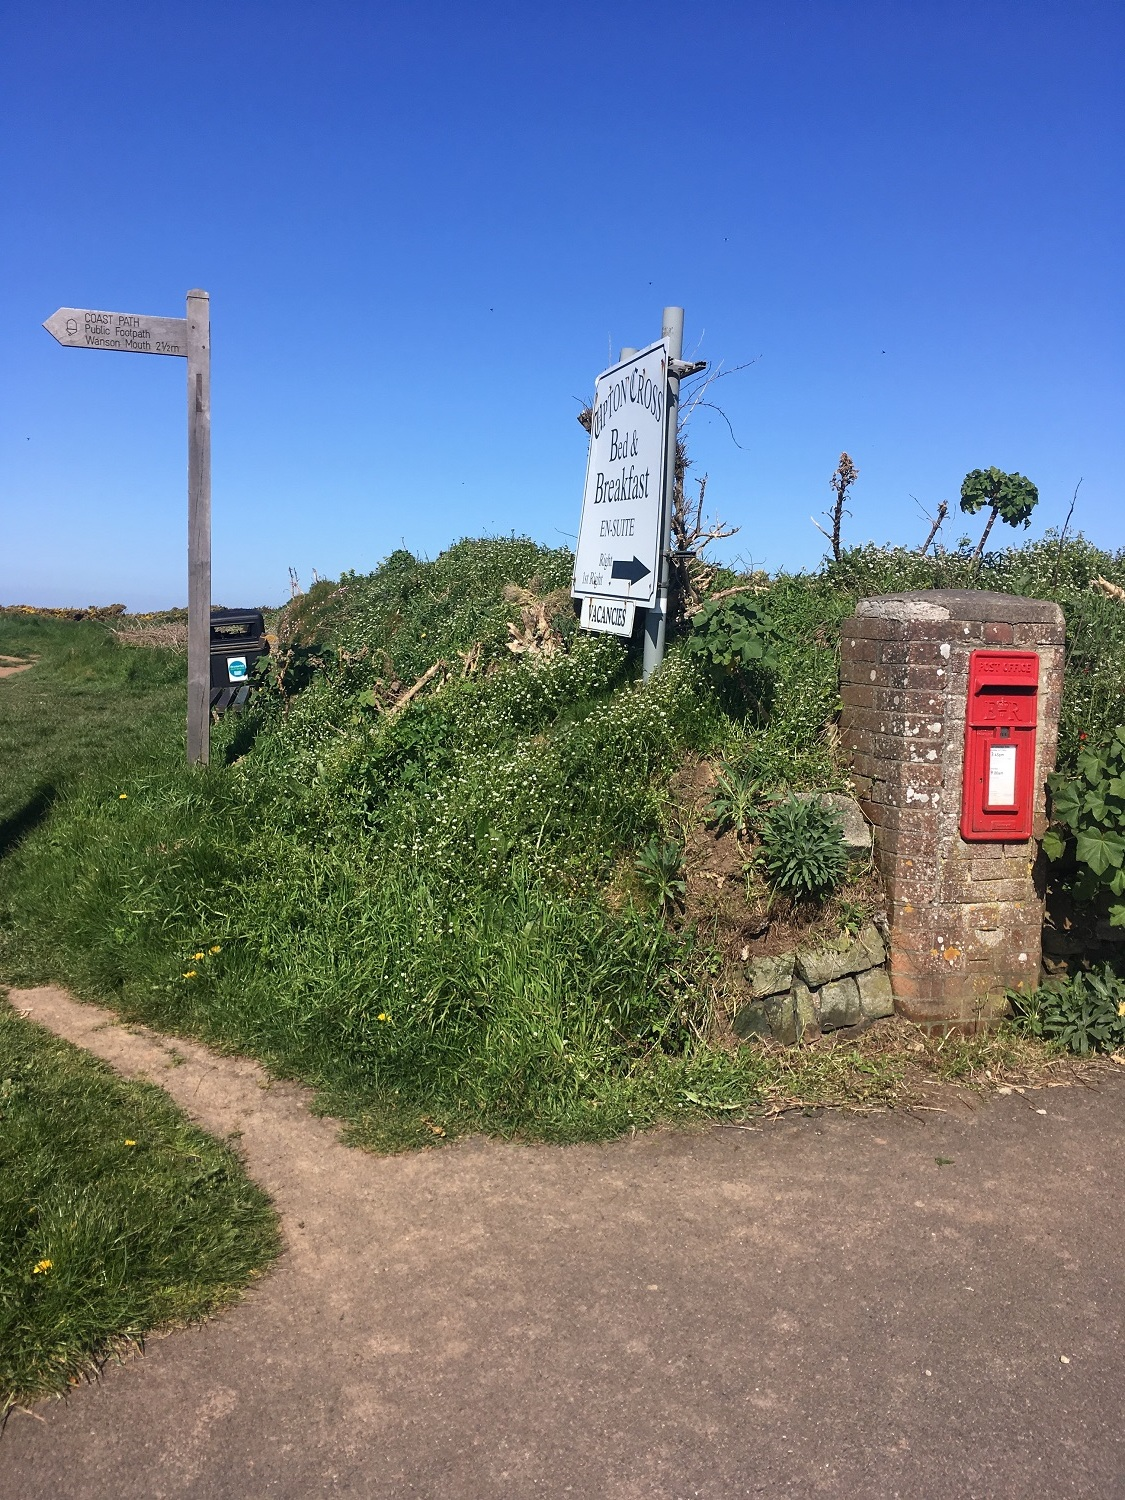 Great Circle Route, South West England Walks & Gardens, Signage & Post Box Along the Trail